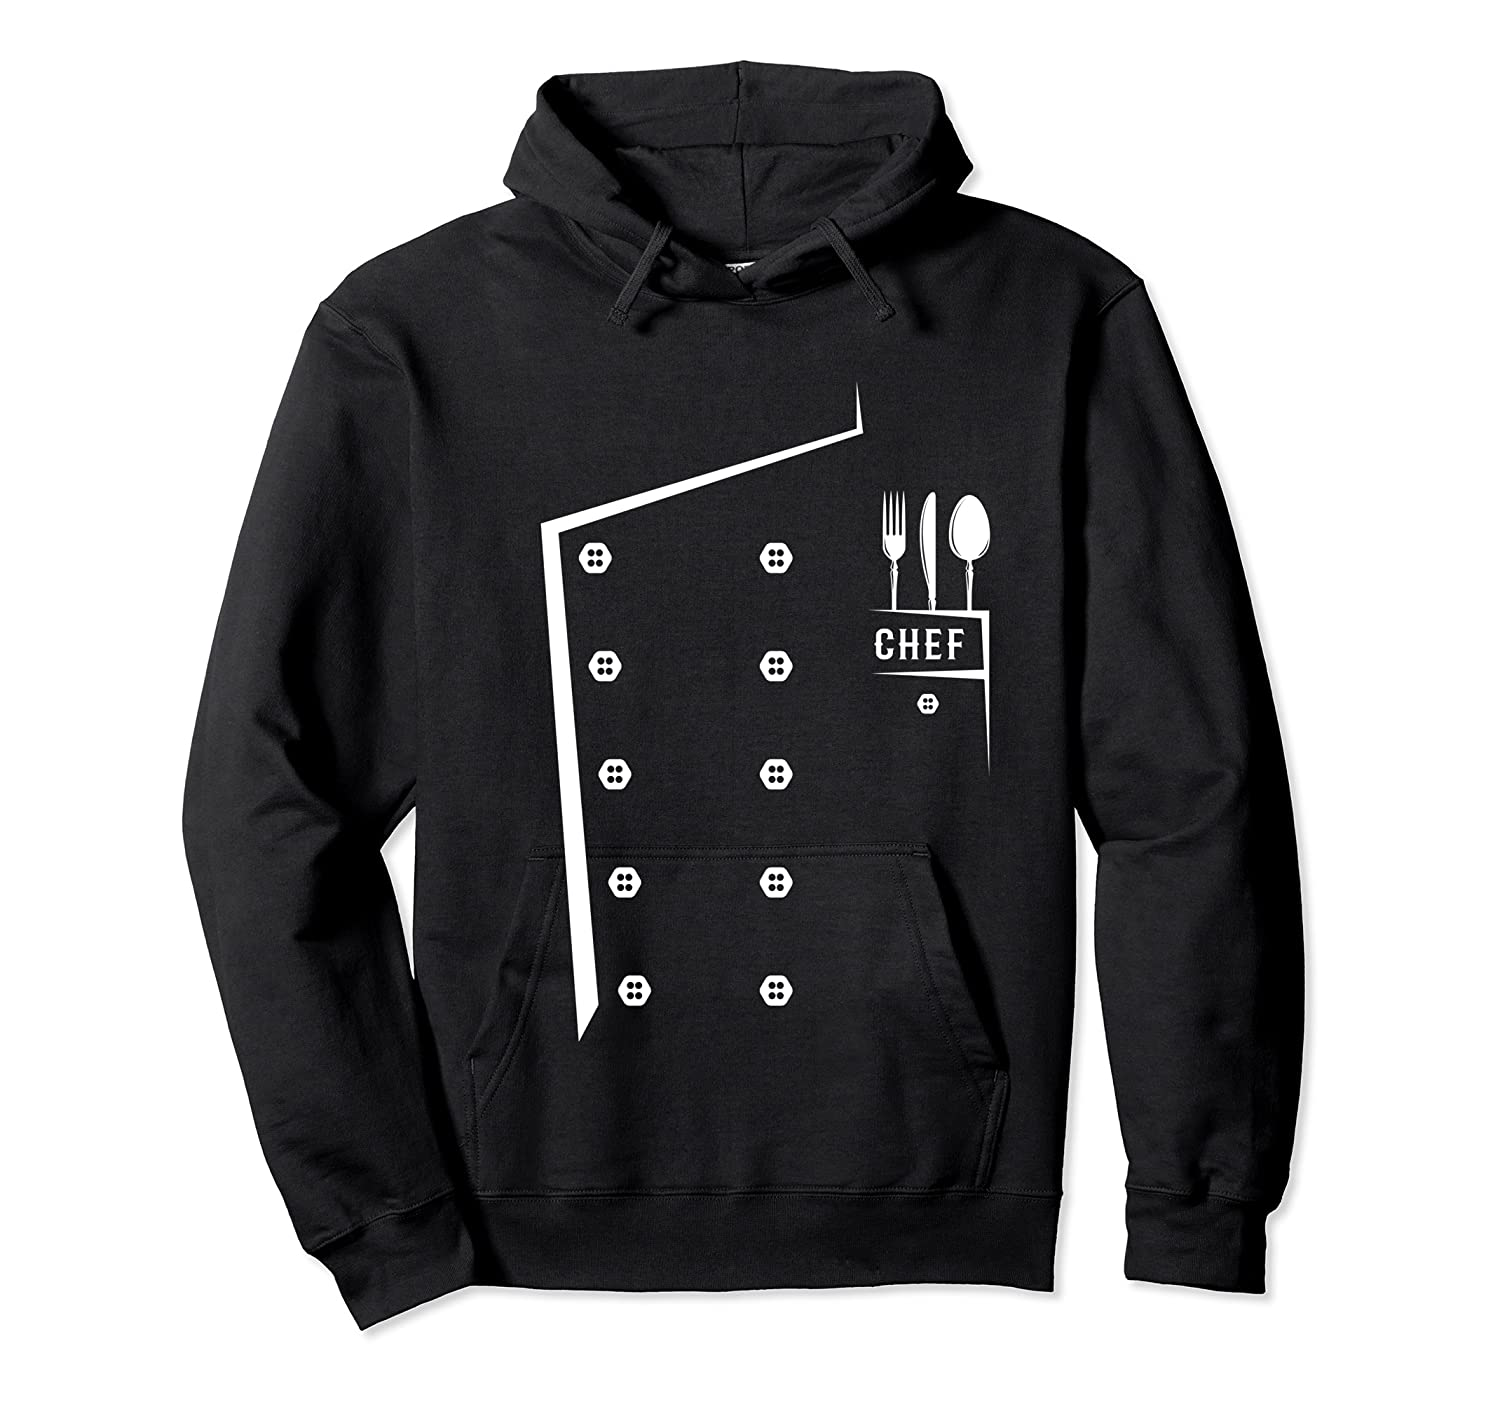 Chef Cooking Funny Culinary Chefs Gifts T Shirt Unisex Pullover Hoodie